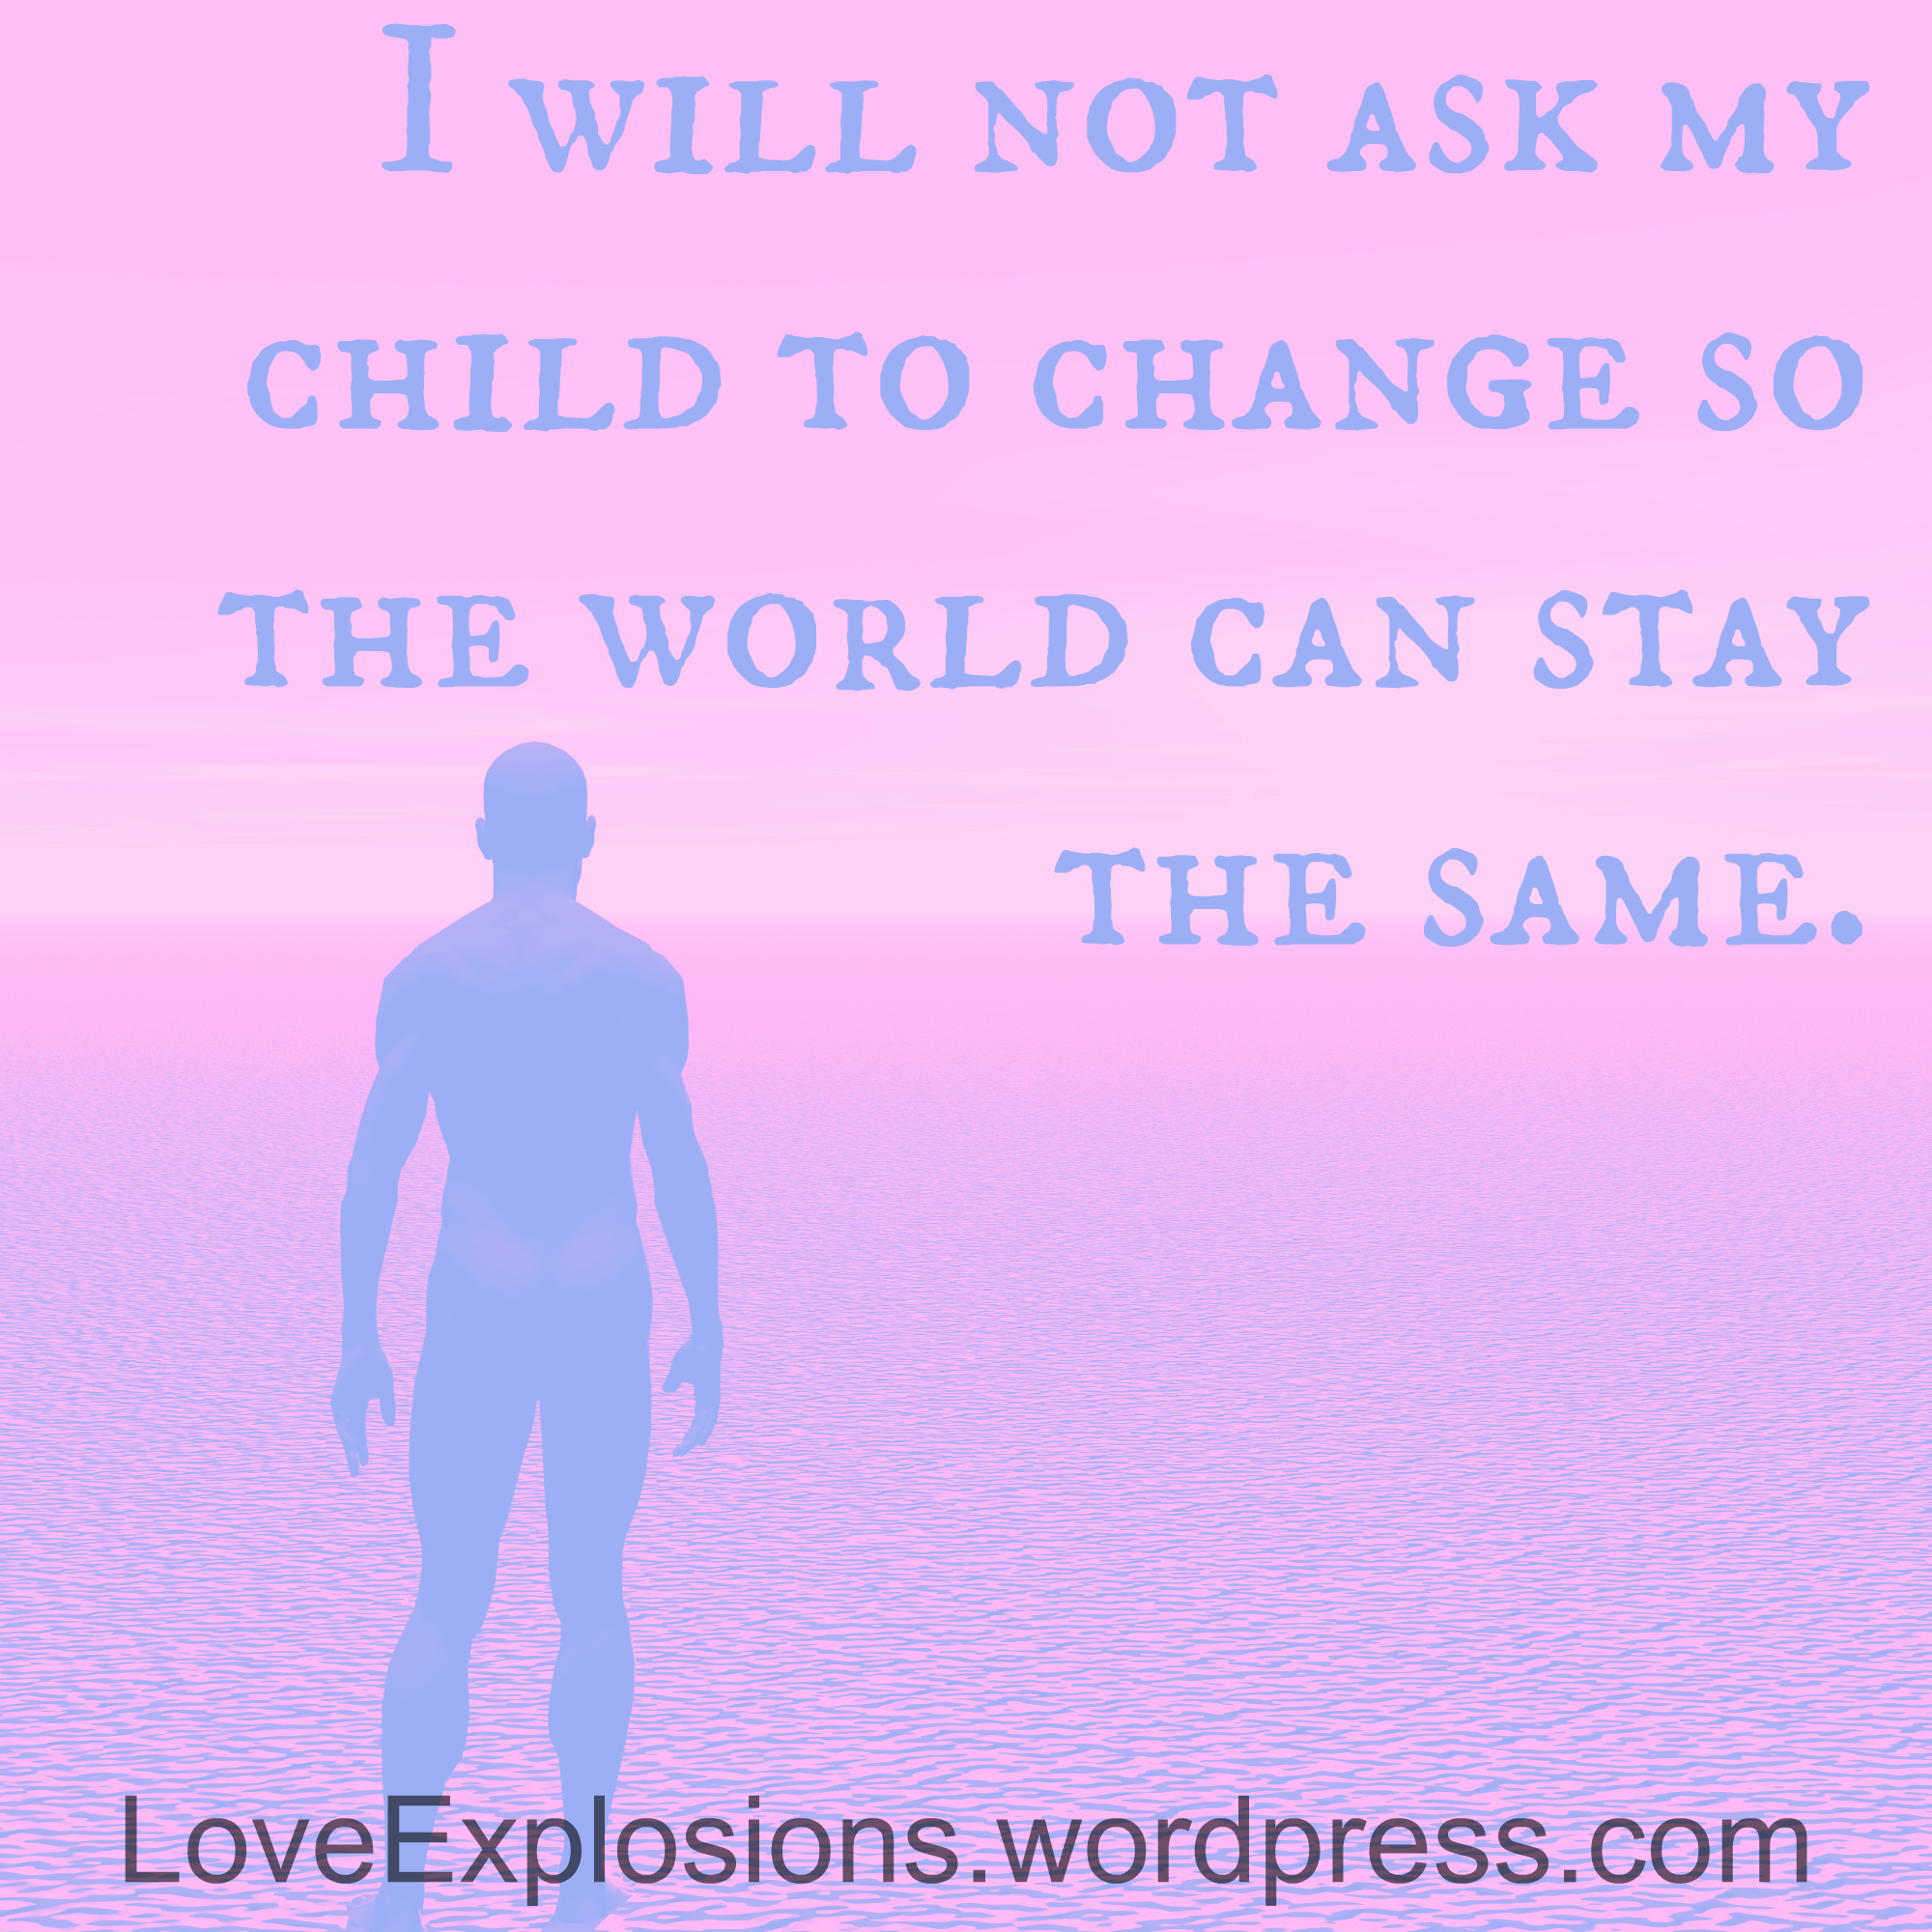 love explosions when the love for your child overwhelms you